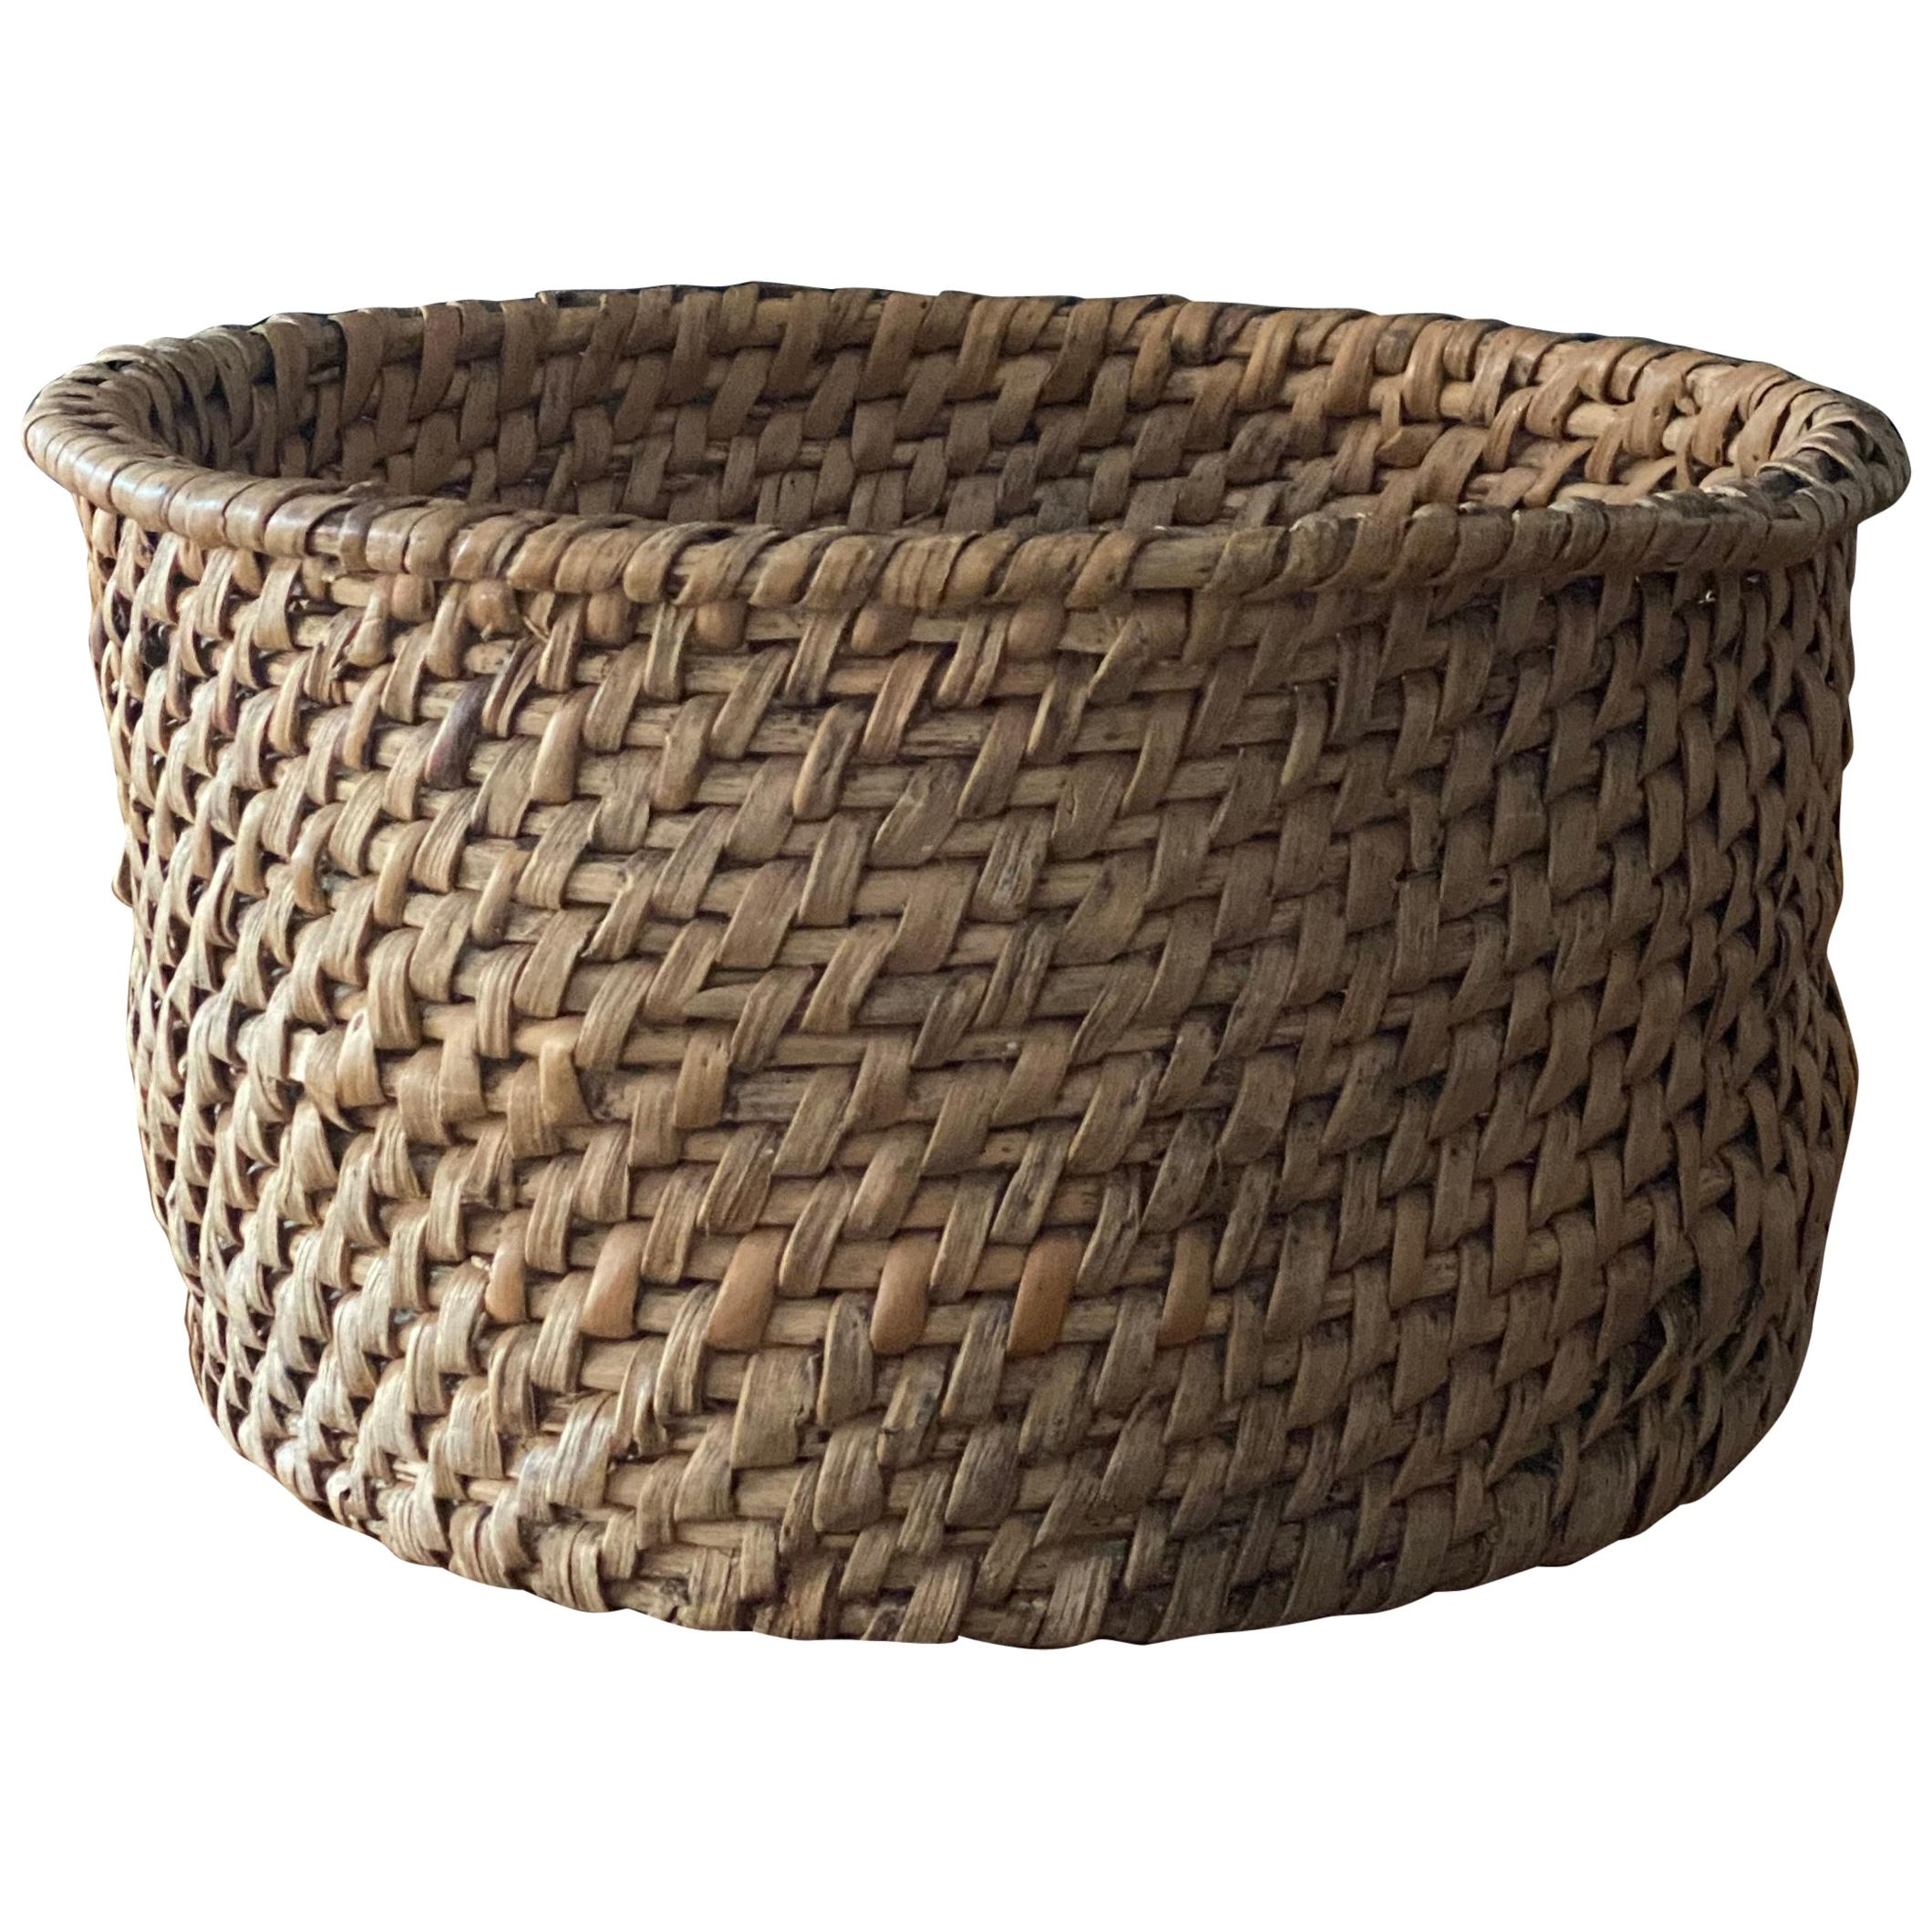 Swedish Craft, Basket or Bowl, Woven Root, Sweden, 19th Century